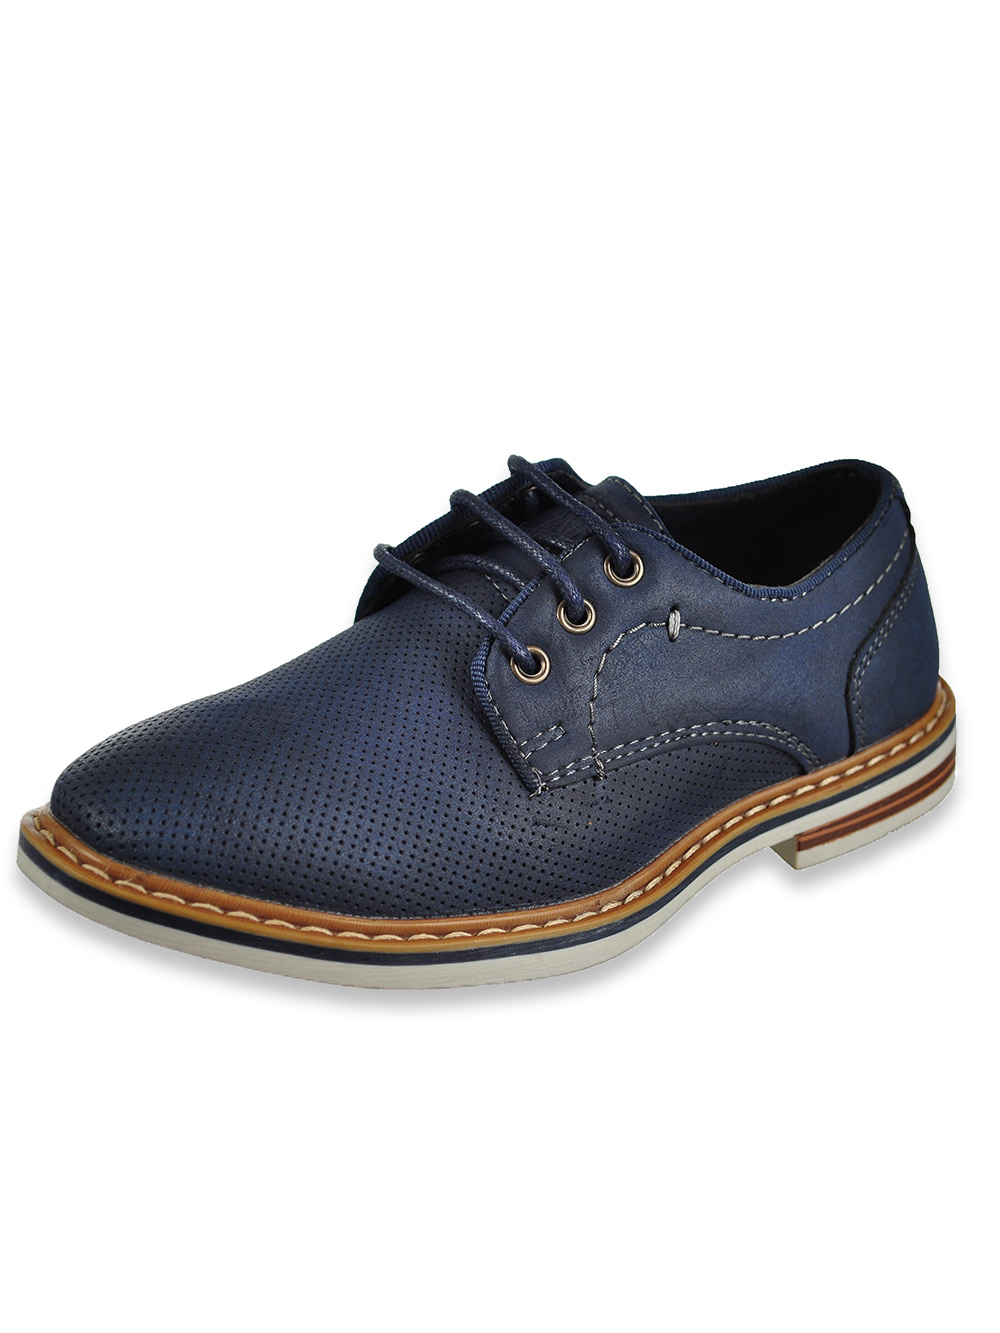 Boys' Lace-Up Loafers